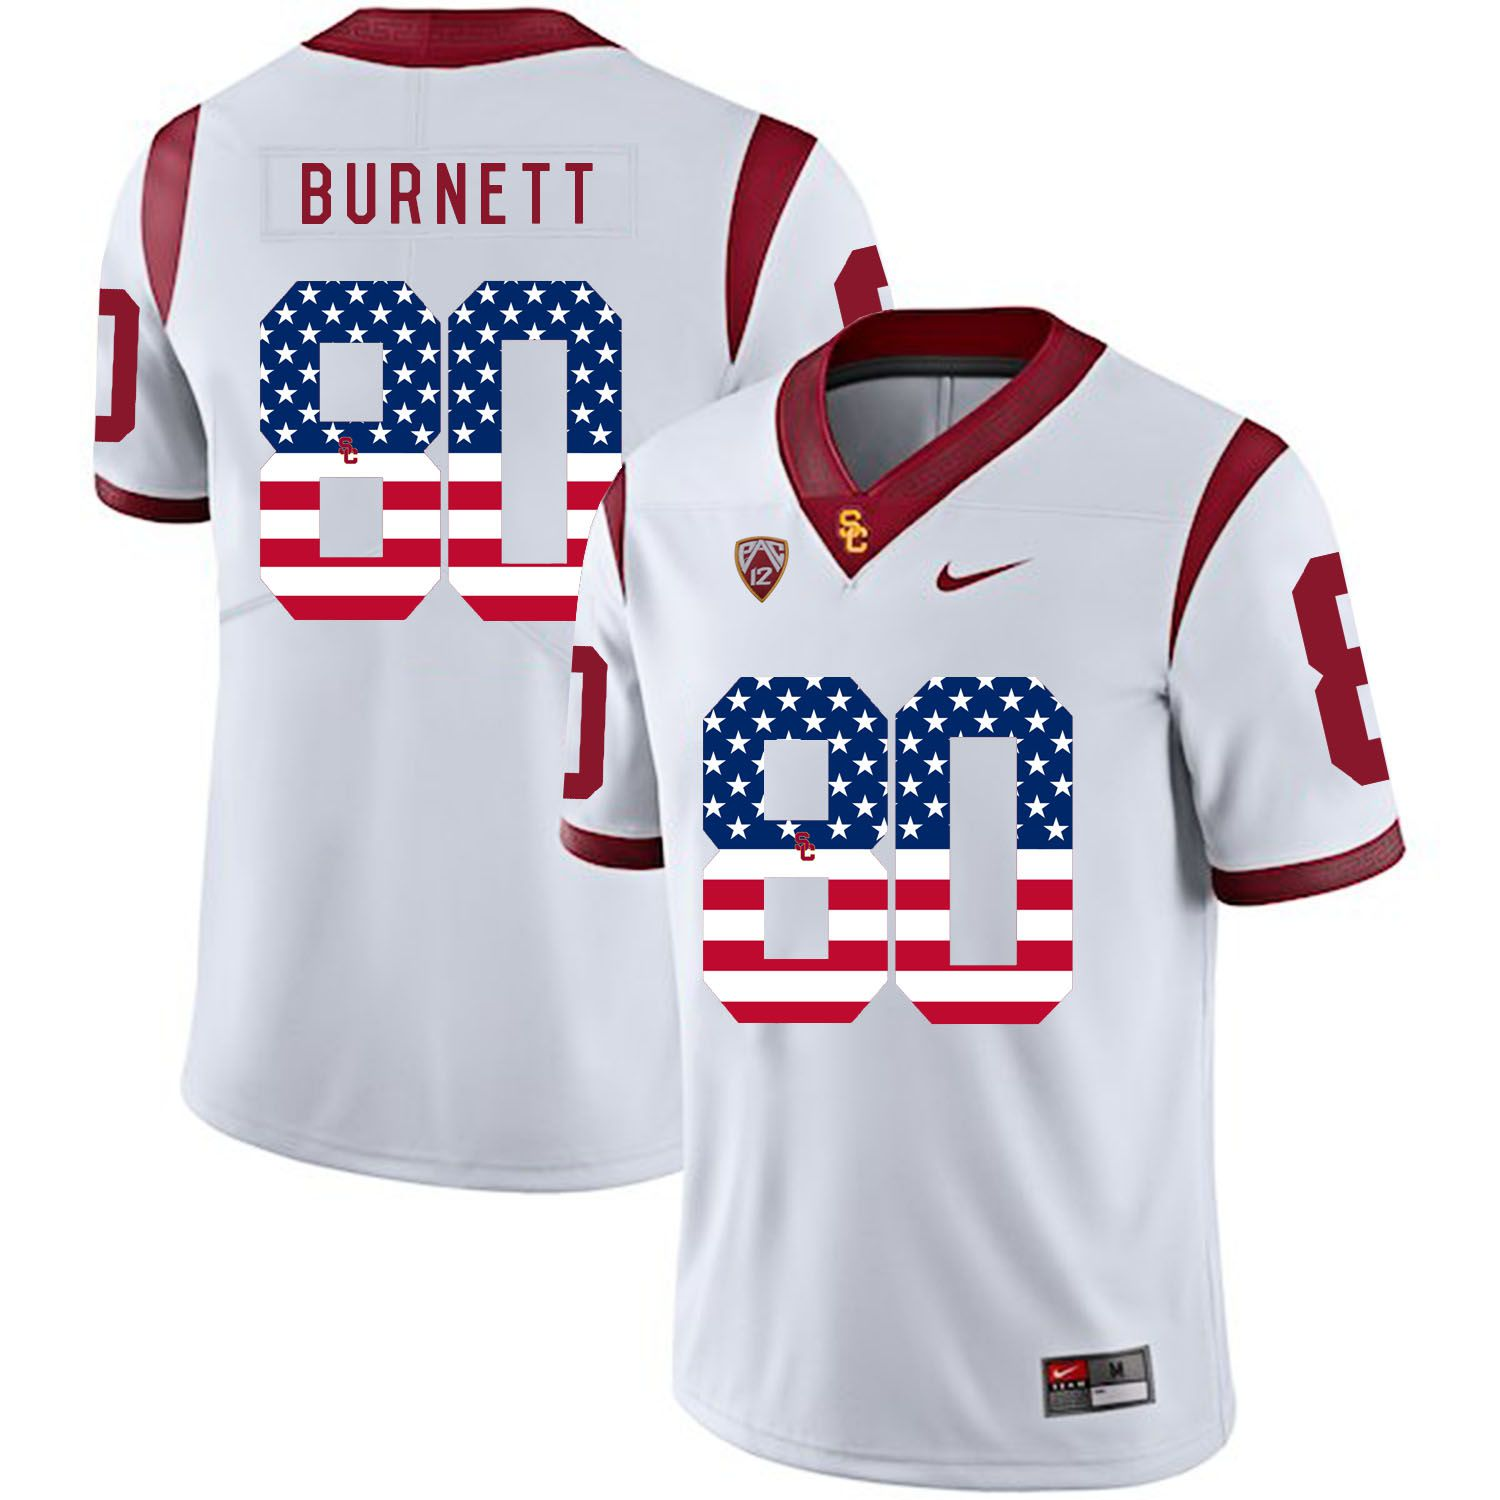 Men USC Trojans 80 Burnett White Flag Customized NCAA Jerseys